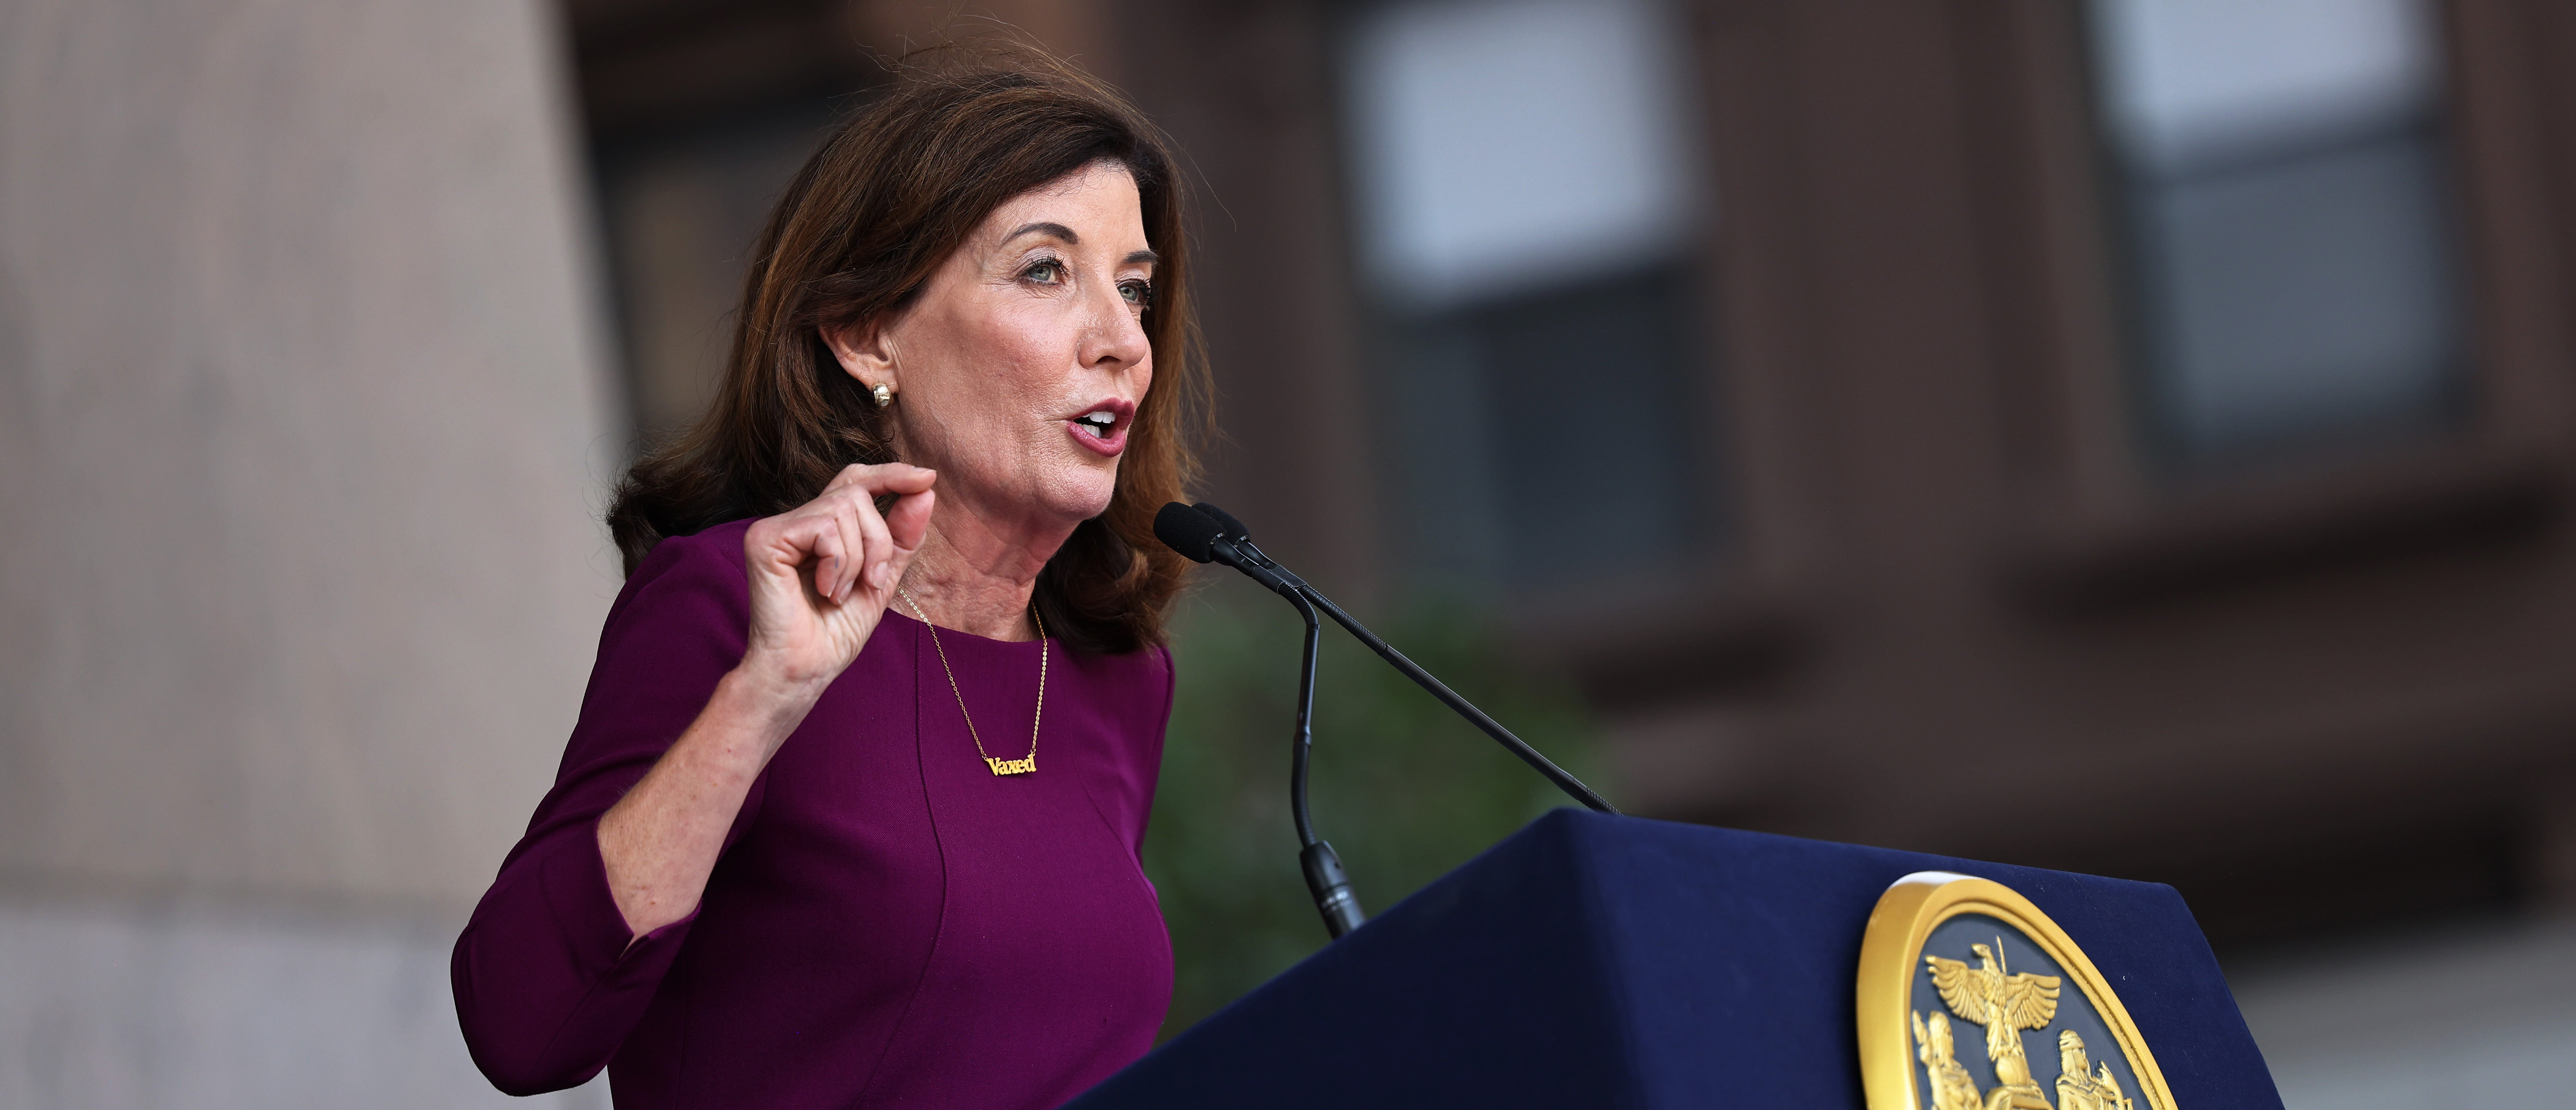 NEW YORK, NEW YORK - AUGUST 26: New York Gov. Kathy Hochul speaks during a press conference announcing State Senator Brian Benjamin as her Lt. Governor on August 26, 2021 in New York City. Senator Benjamin, who placed fourth in the Democratic primary for city comptroller earlier this year, will replace Hochul who was sworn in as Governor this week after the resignation of former Gov. Andrew Cuomo. Senator Benjamin has been a lead sponsor and advocate for criminal and police reforms that includes the Eric Garner Anti-Chokehold Act and the Less is More Act, which restricts the use of incarceration for non-criminal technical parole violations. He has also been a proponent of affordable housing. (Photo by Michael M. Santiago/Getty Images)